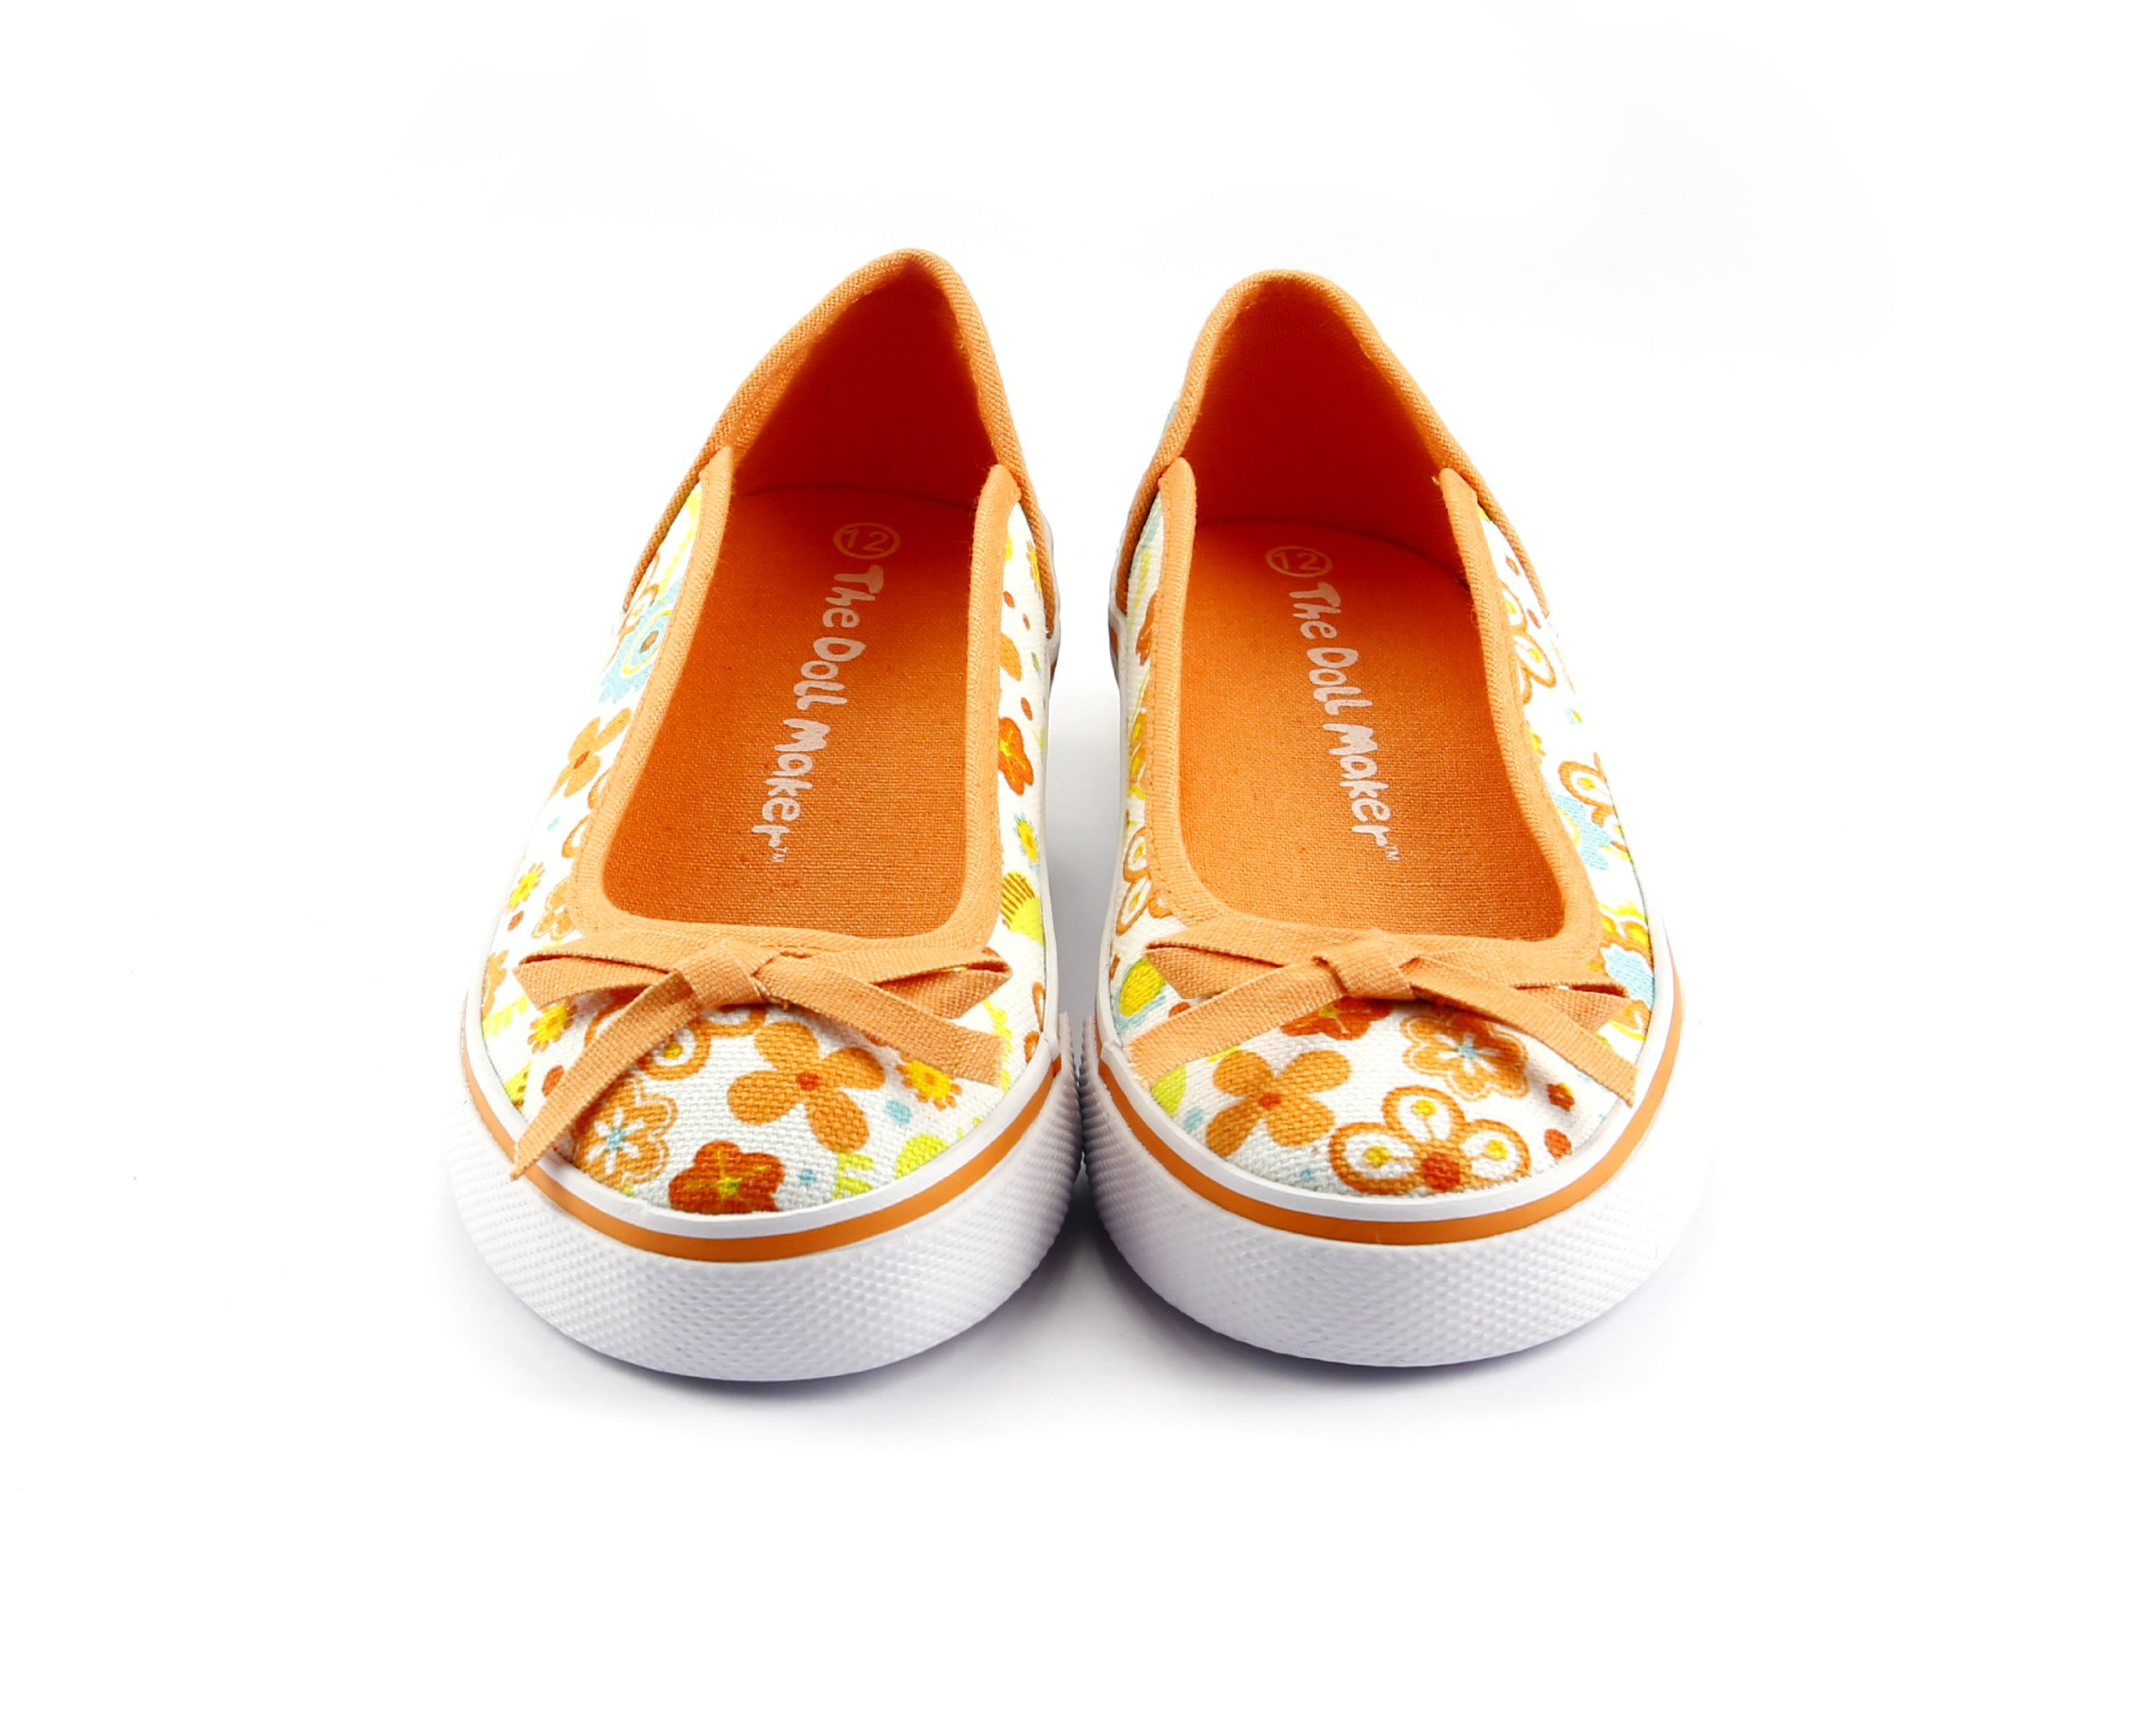 Girls Floral Print Sneaker Orange Spring Summer Back To School Shoes Size 2 #1332138